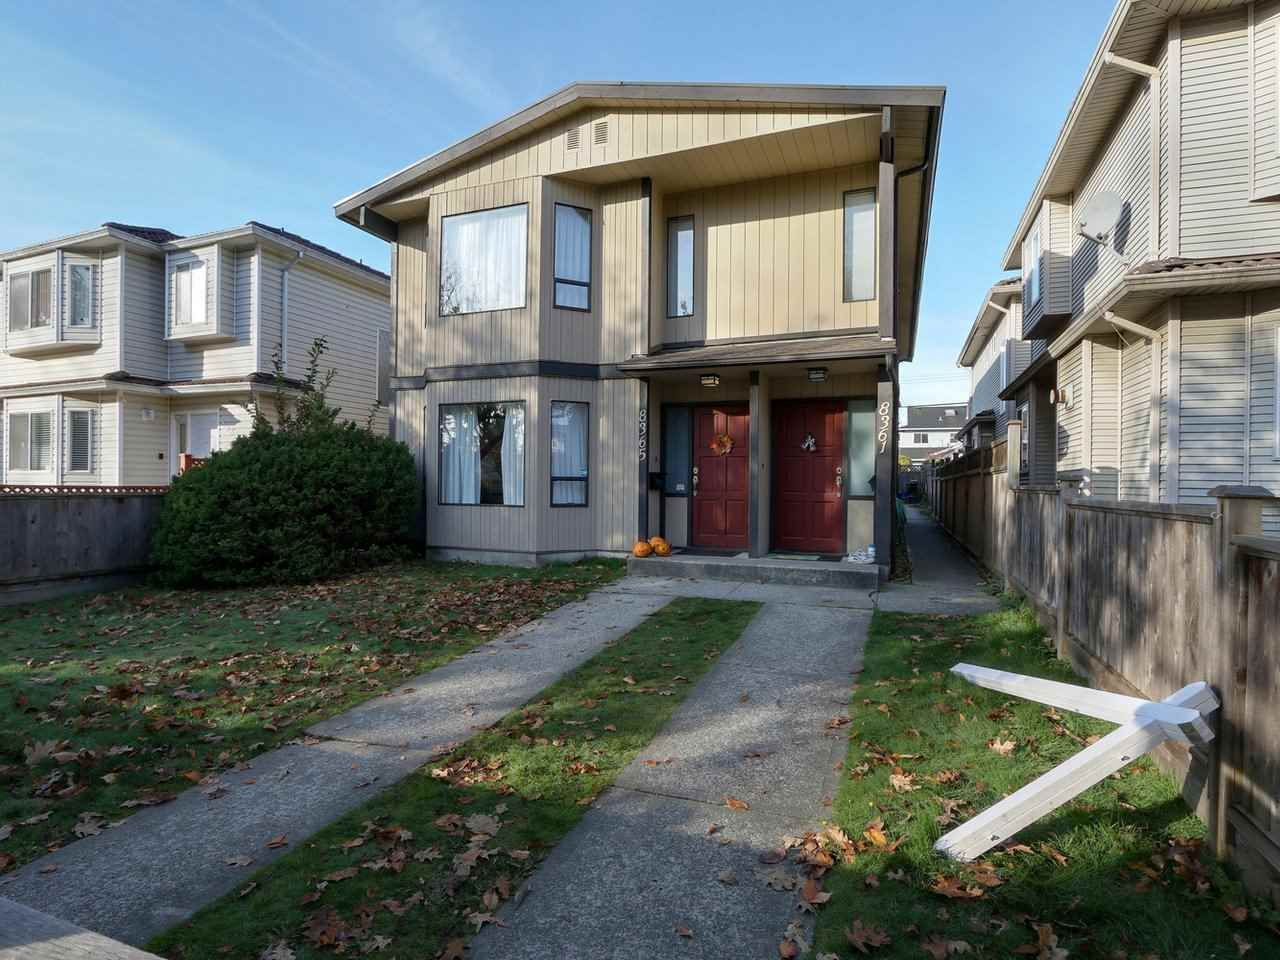 """Main Photo: 8361- - 8365 CARTIER Street in Vancouver: Marpole House for sale in """"MARPOLE"""" (Vancouver West)  : MLS®# R2416944"""